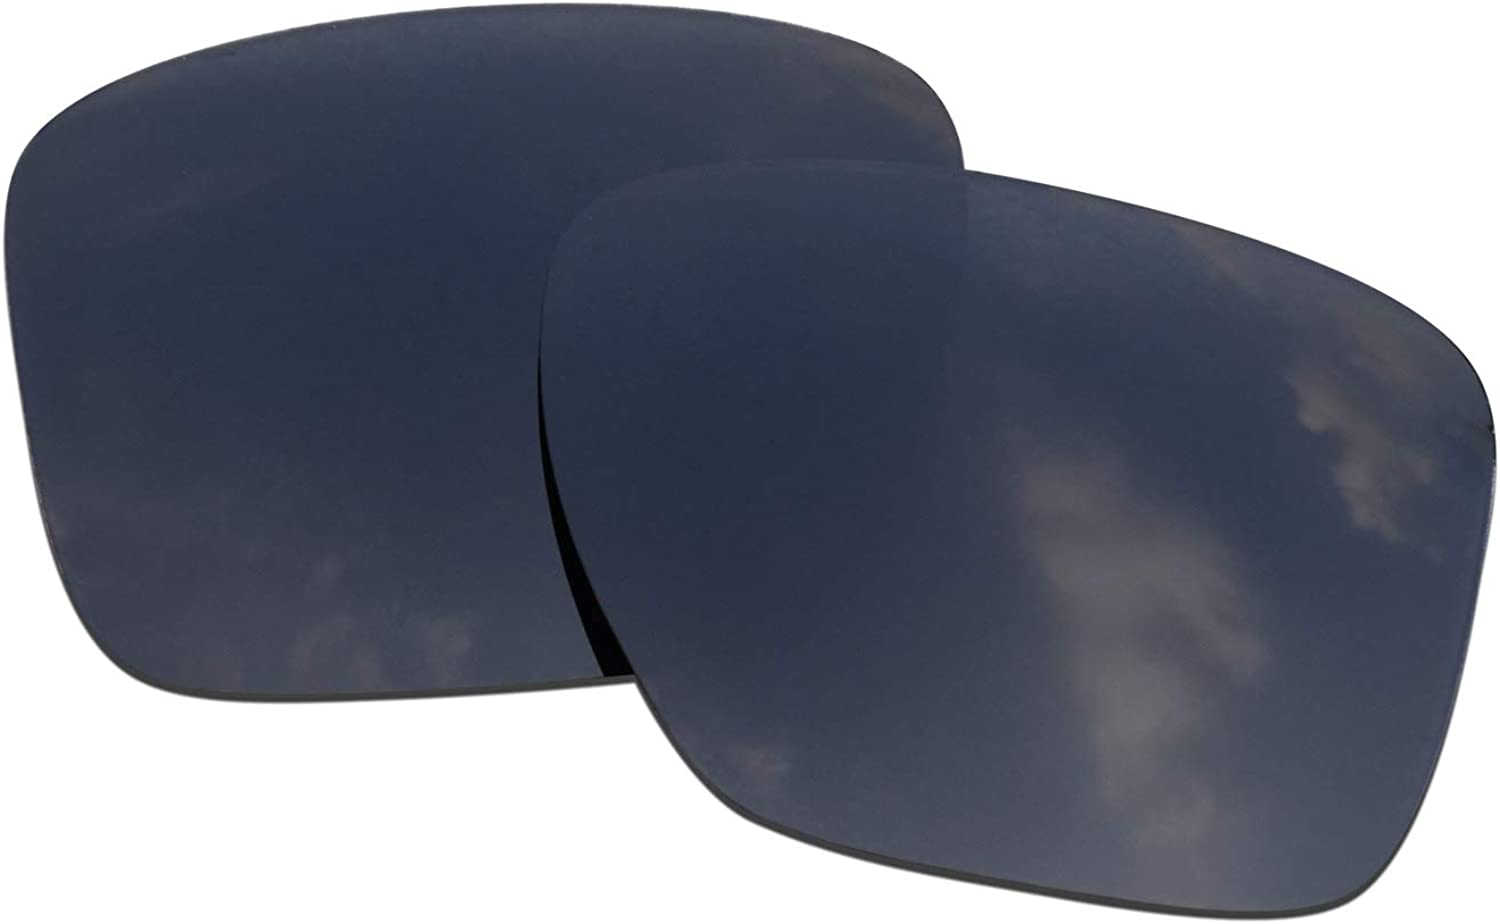 Max 72% OFF SOODASE For Oakley Sliver XL Super Special SALE held Sunglasses Black Polarized Replacem